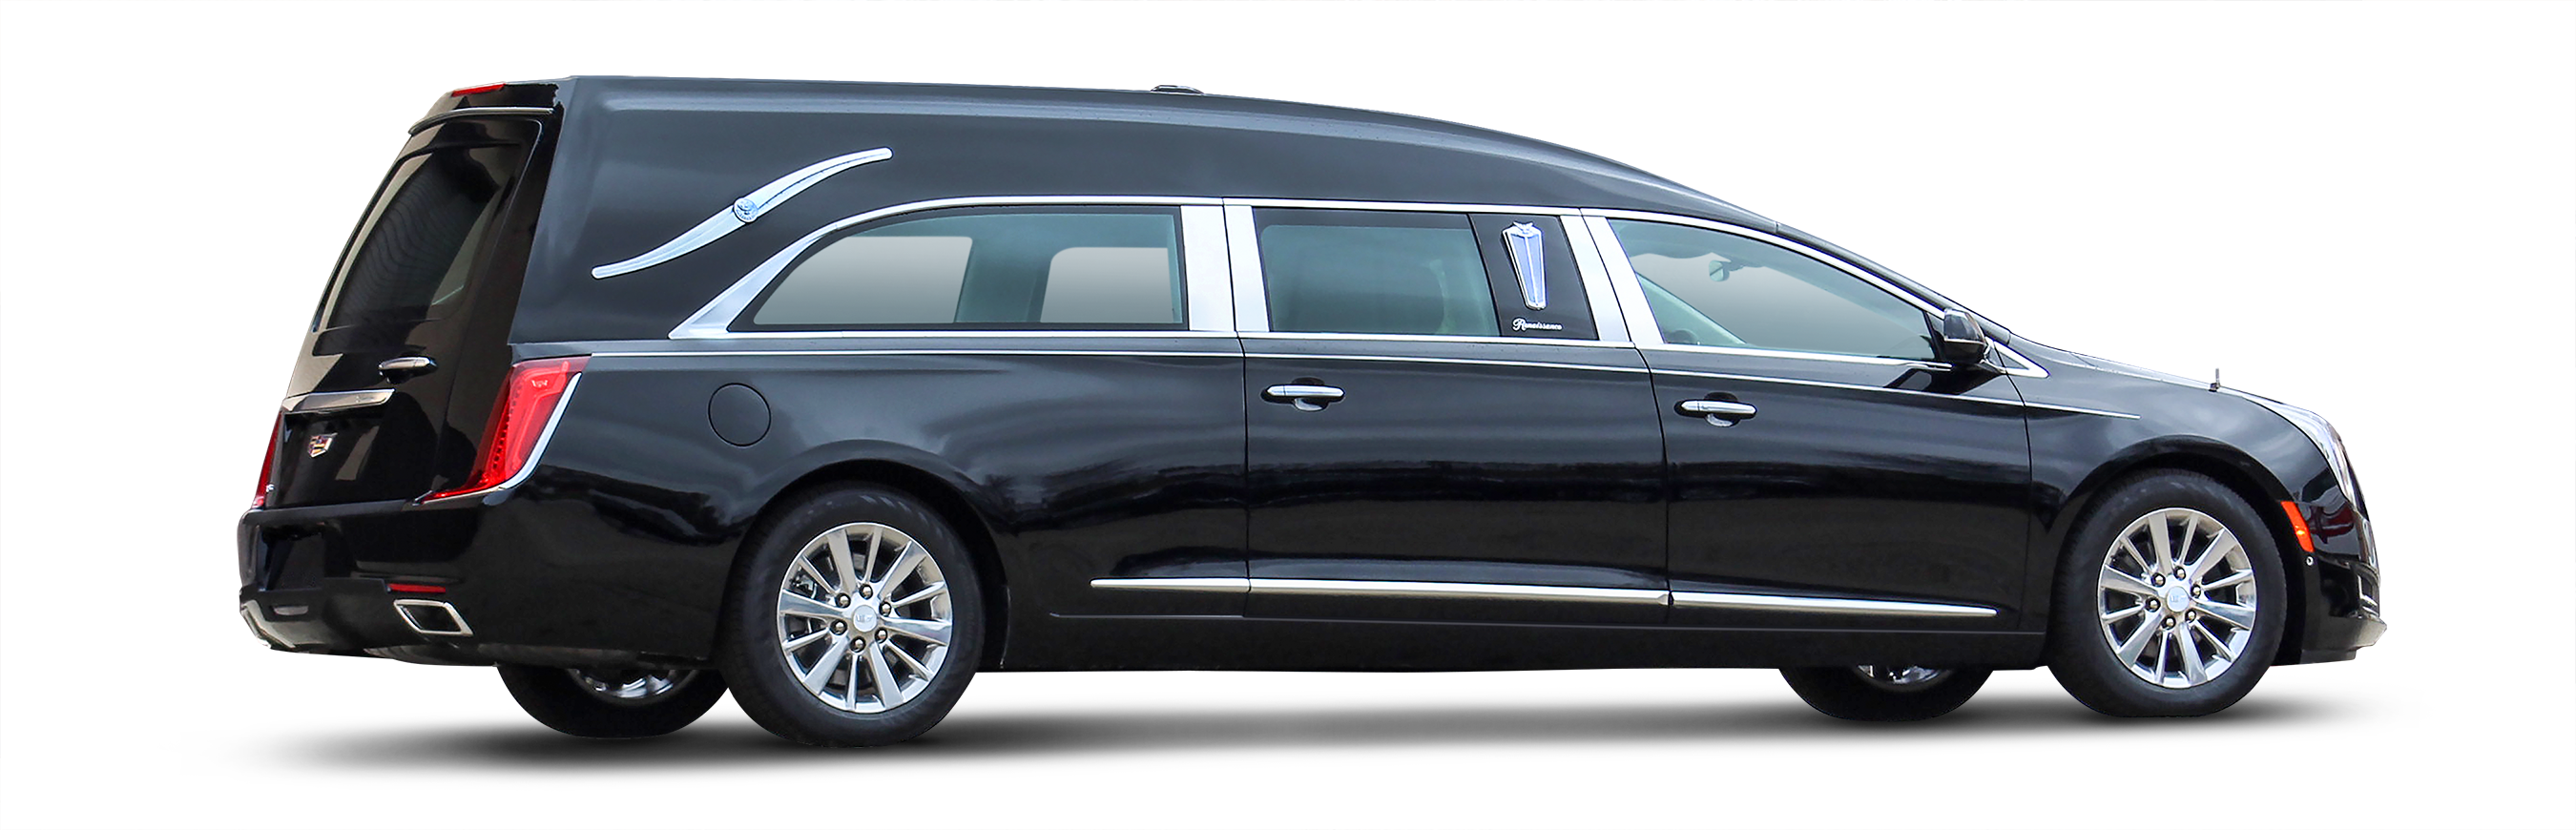 66 Best 2020 Cadillac Hearse Performance